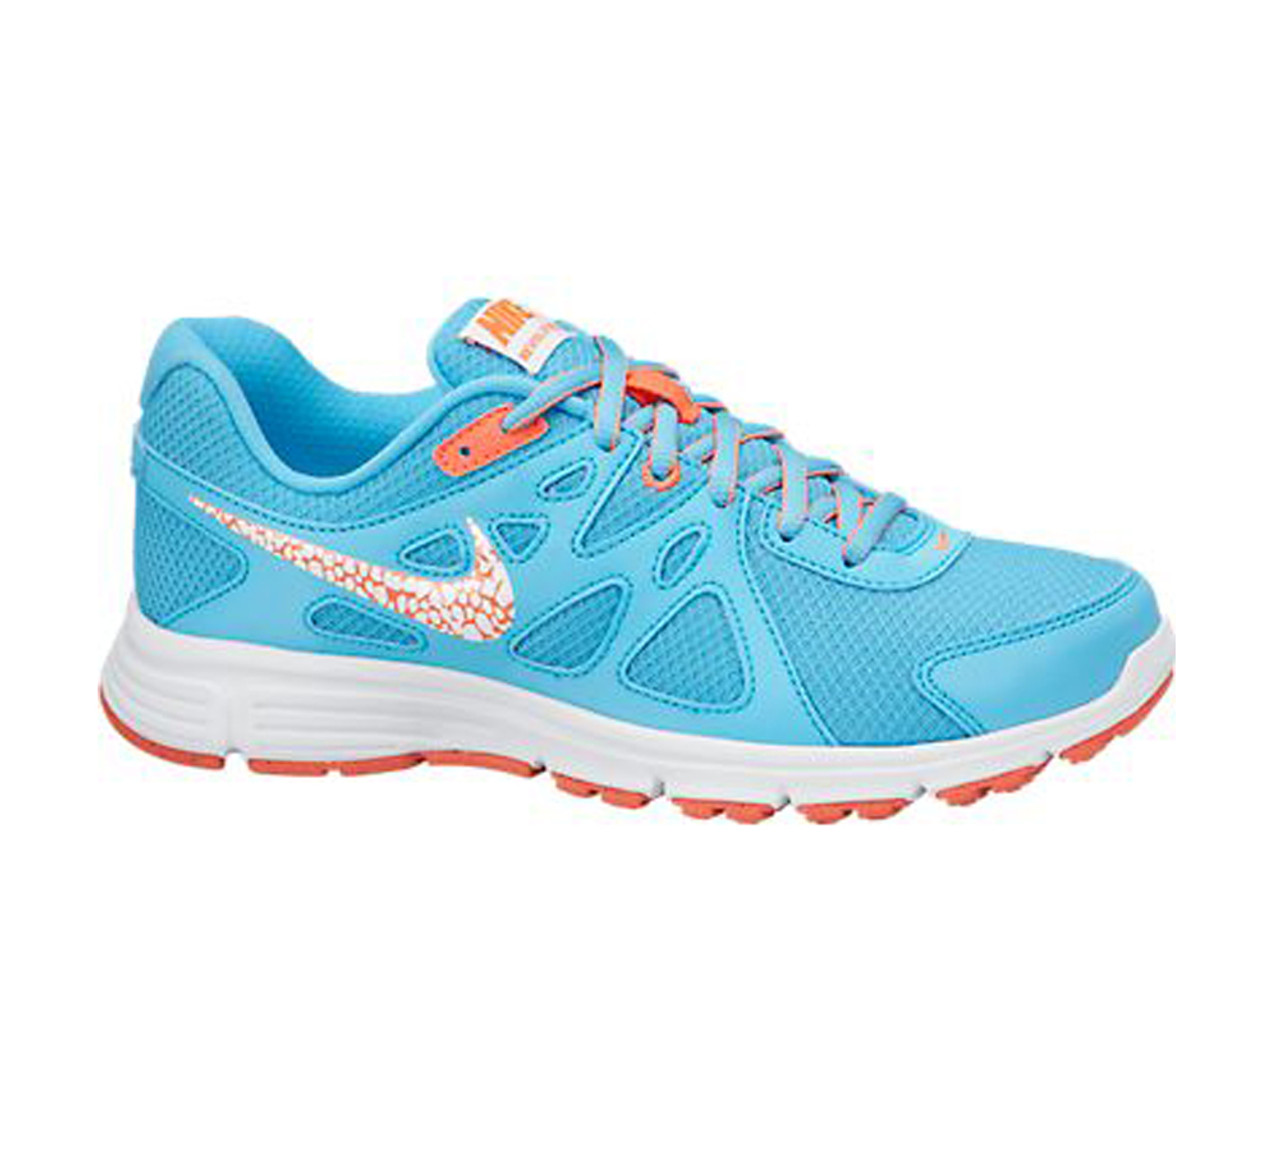 4b8af91a Nike Women's Revolution 2 Running Shoe Clearwater/Hot Lava